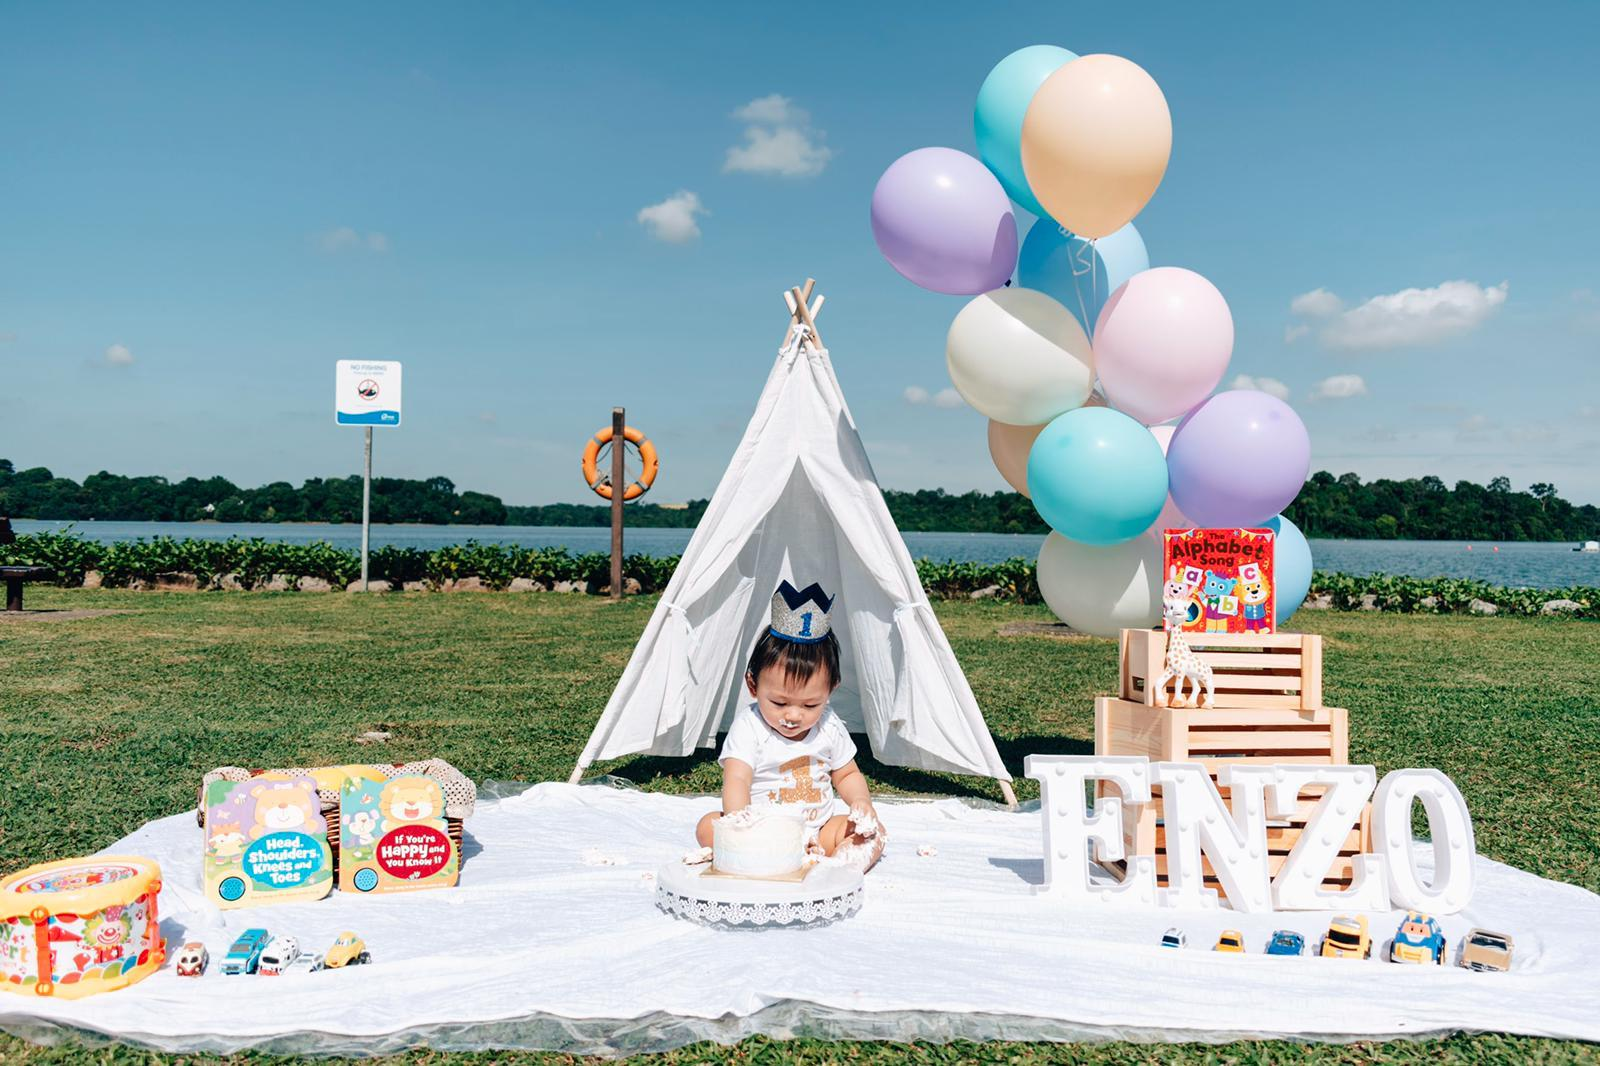 Memorable Cake Smash Photography (Outdoor/ Home) -  90mins Session